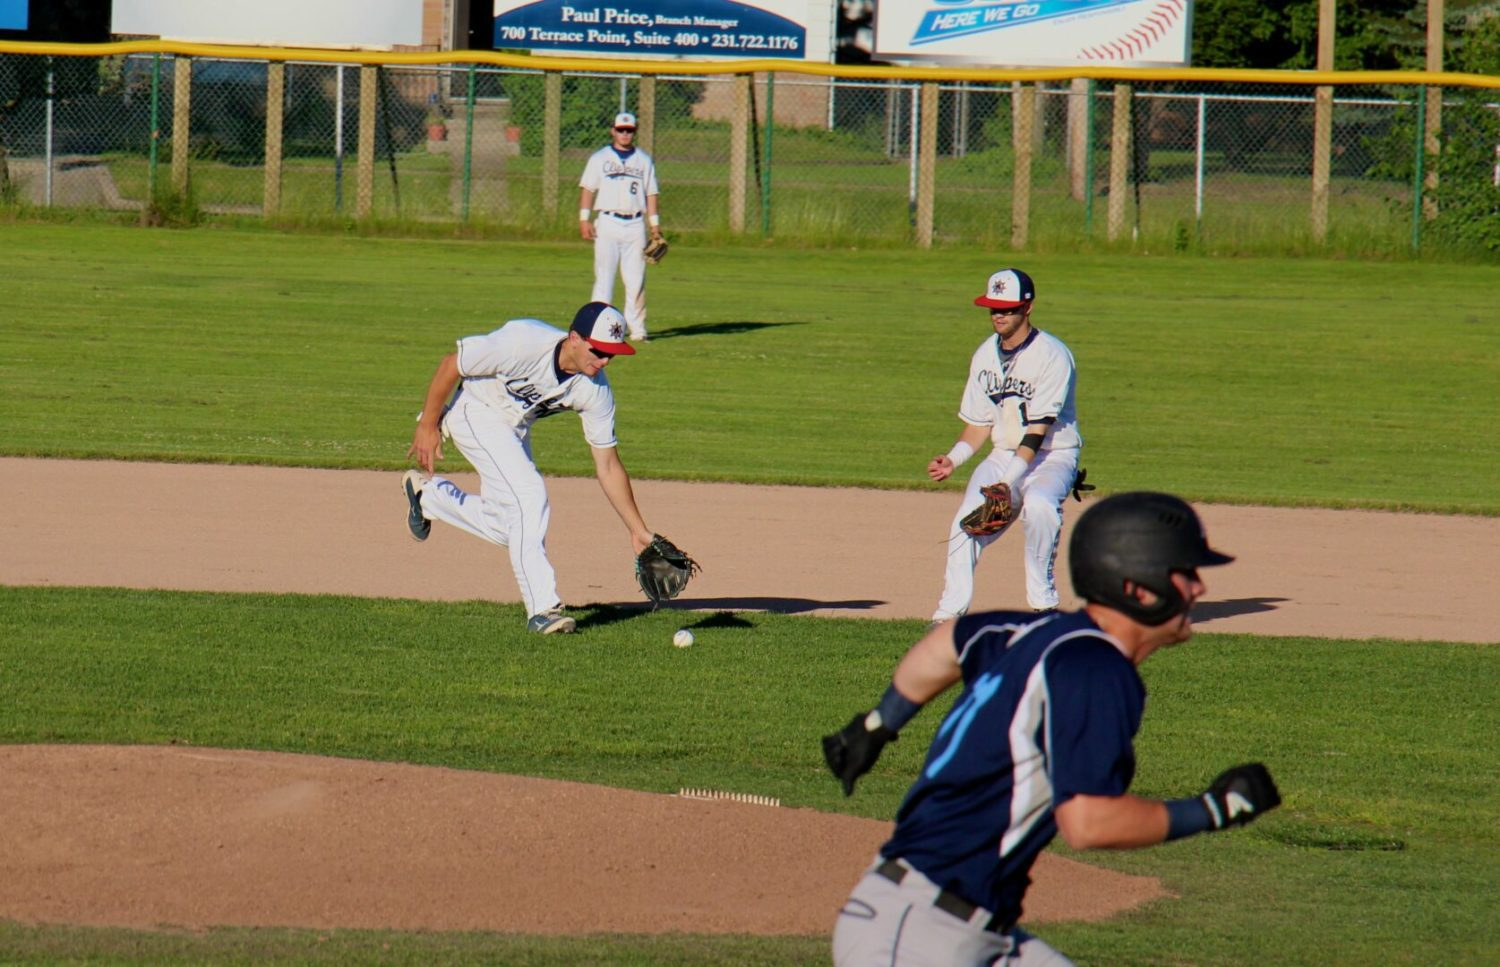 Clippers rally and defeat the River City Rapids with a walk-off hit by Jason Ribecky